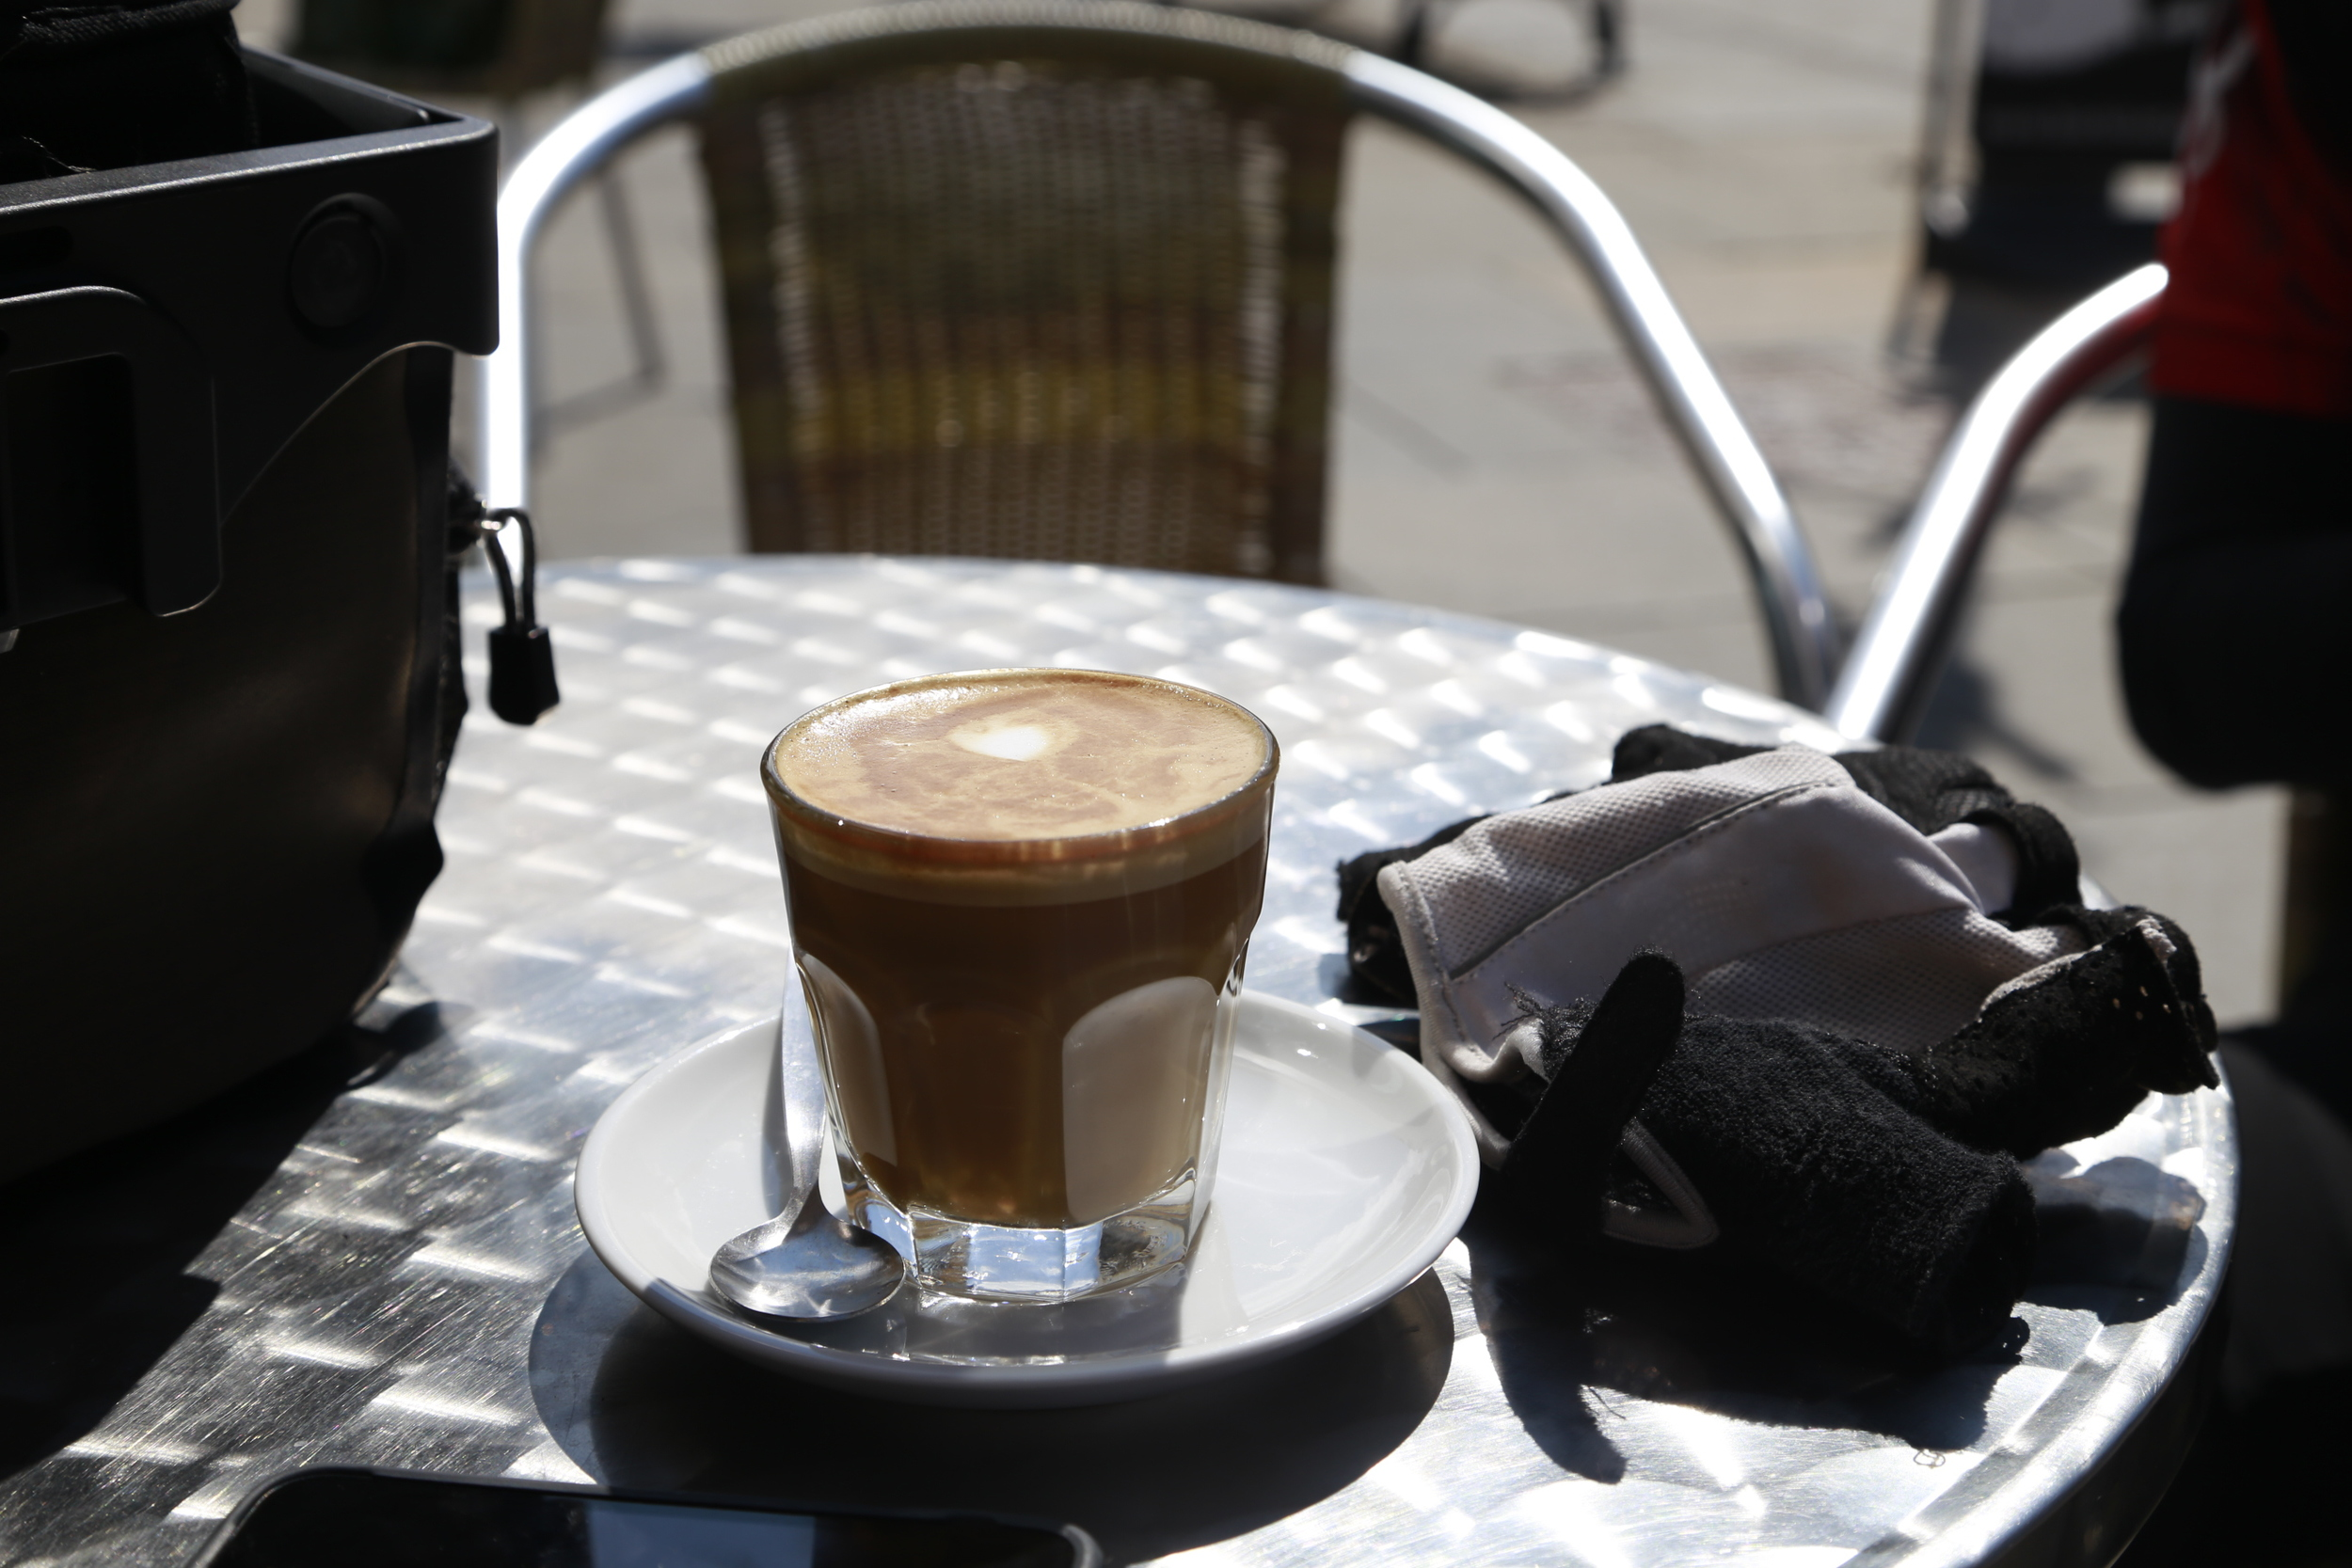 coffee, coffee beans, cafe, scotland,  touring bikes, bike gear, adventure cycling, ride, bikepacking, cycle routes, touring bicycles